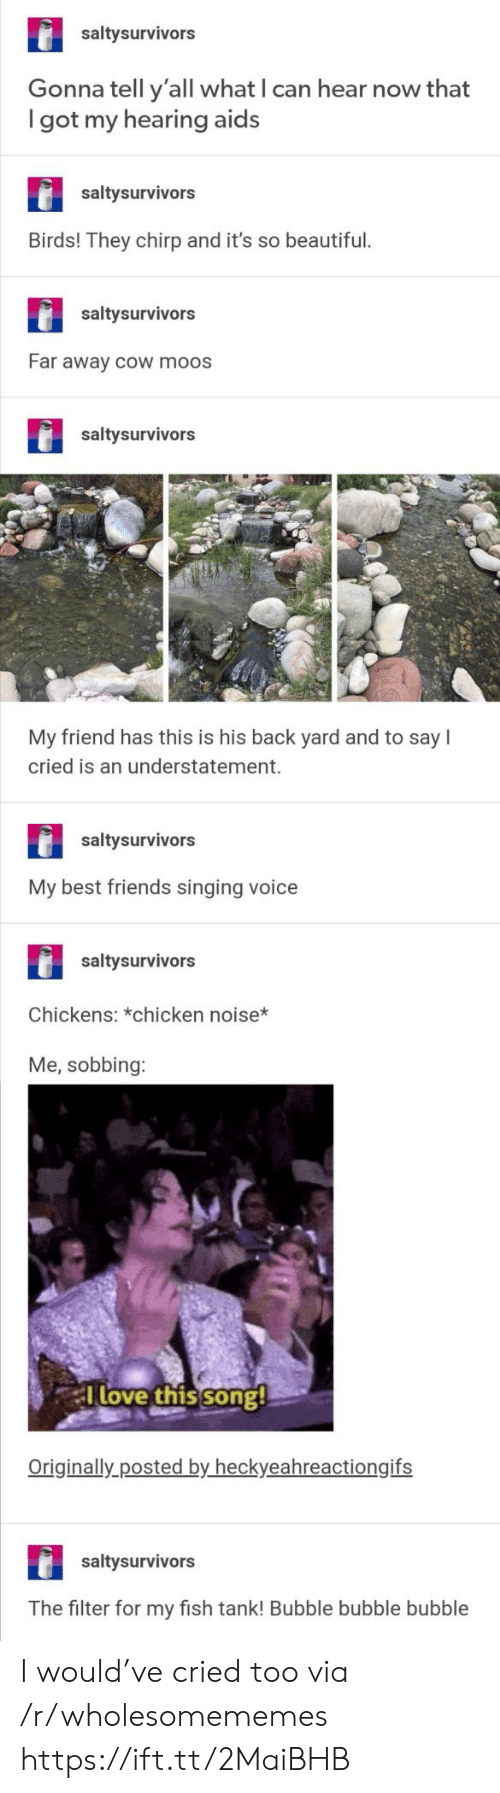 cow: saltysurvivors  Gonna tell y'all what I can hear now that  got my hearing aids  saltysurvivors  Birds! They chirp and it's so beautiful.  saltysurvivors  Far away cOw moos  saltysurvivors  My friend has this is his back yard and to say  cried is an understatement.  saltysurvivors  My best friends singing voice  saltysurvivors  Chickens: *chicken noise*  Me, sobbing:  Tlove this song!  Originally posted by heckyeahreactiongifs  saltysurvivors  The filter for my fish tank! Bubble bubble bubble I would've cried too via /r/wholesomememes https://ift.tt/2MaiBHB